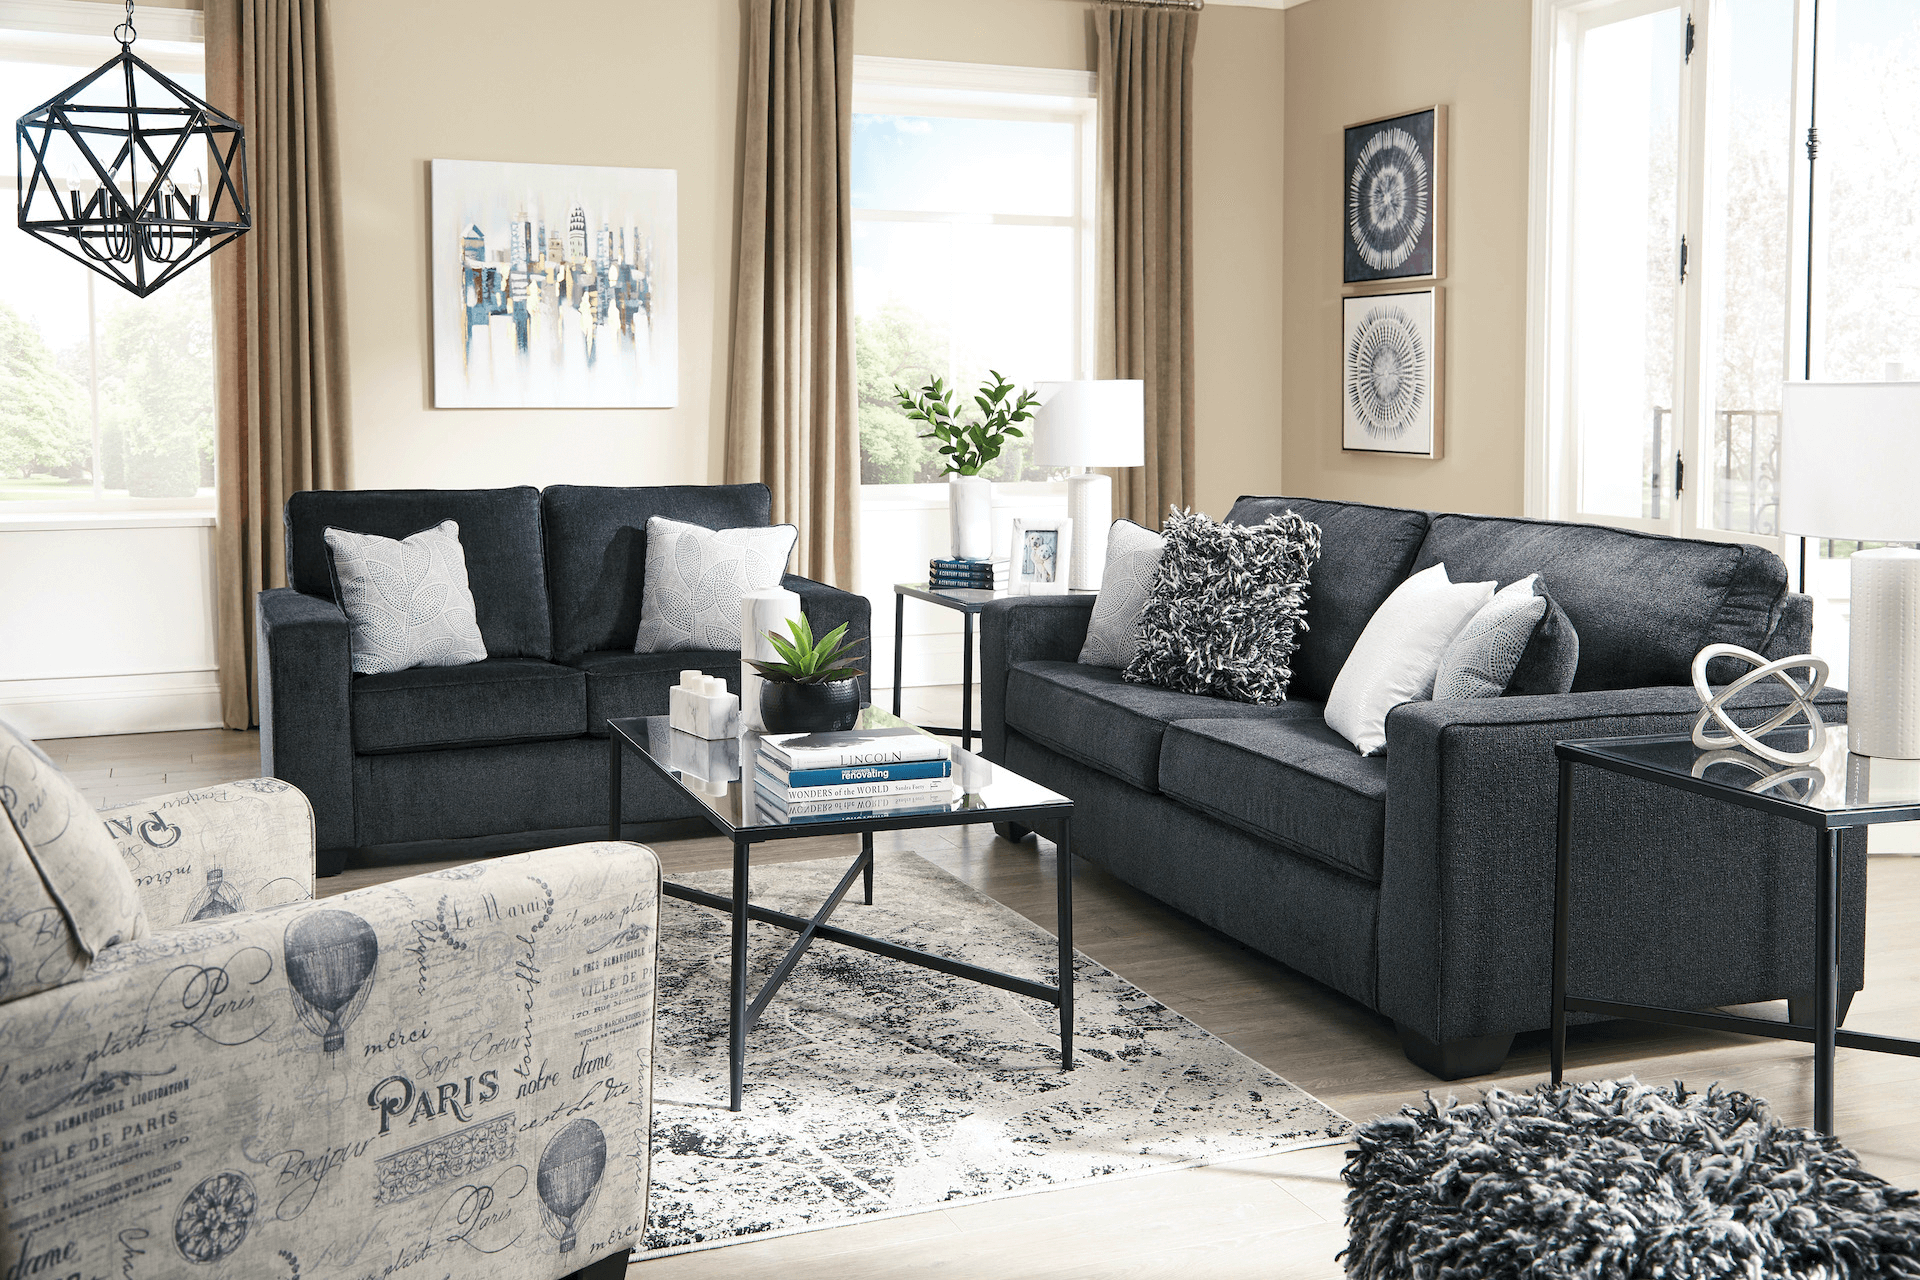 Atlantic_Furniture-Sofa_Sets-87213_SL_T003_hi-res